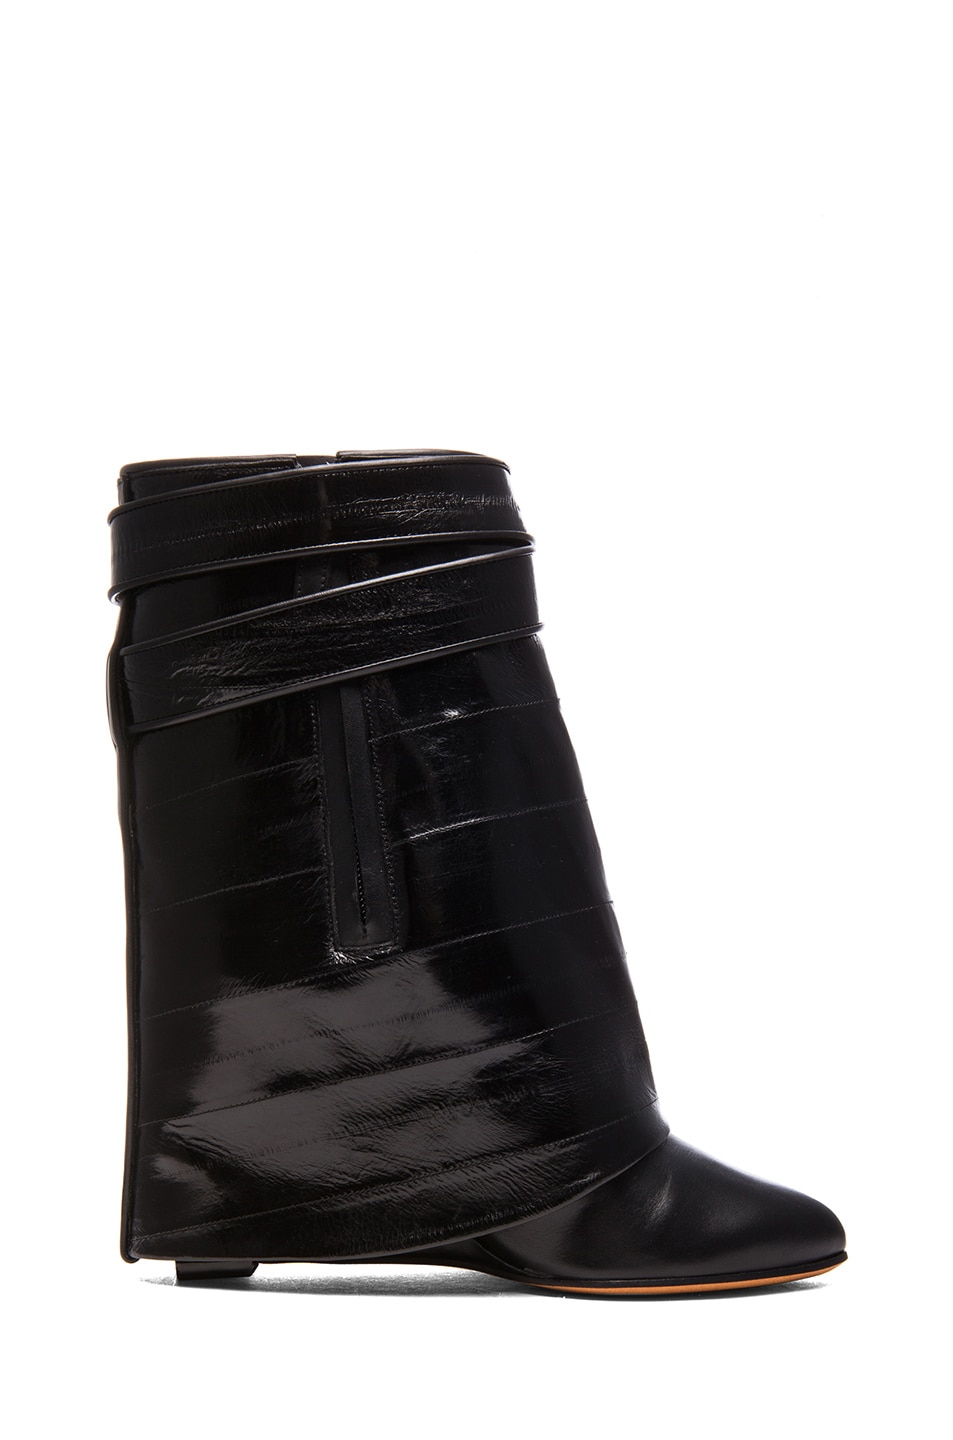 Image 5 of GIVENCHY Shark Lock Eelskin & Calfskin Leather Boots in Black